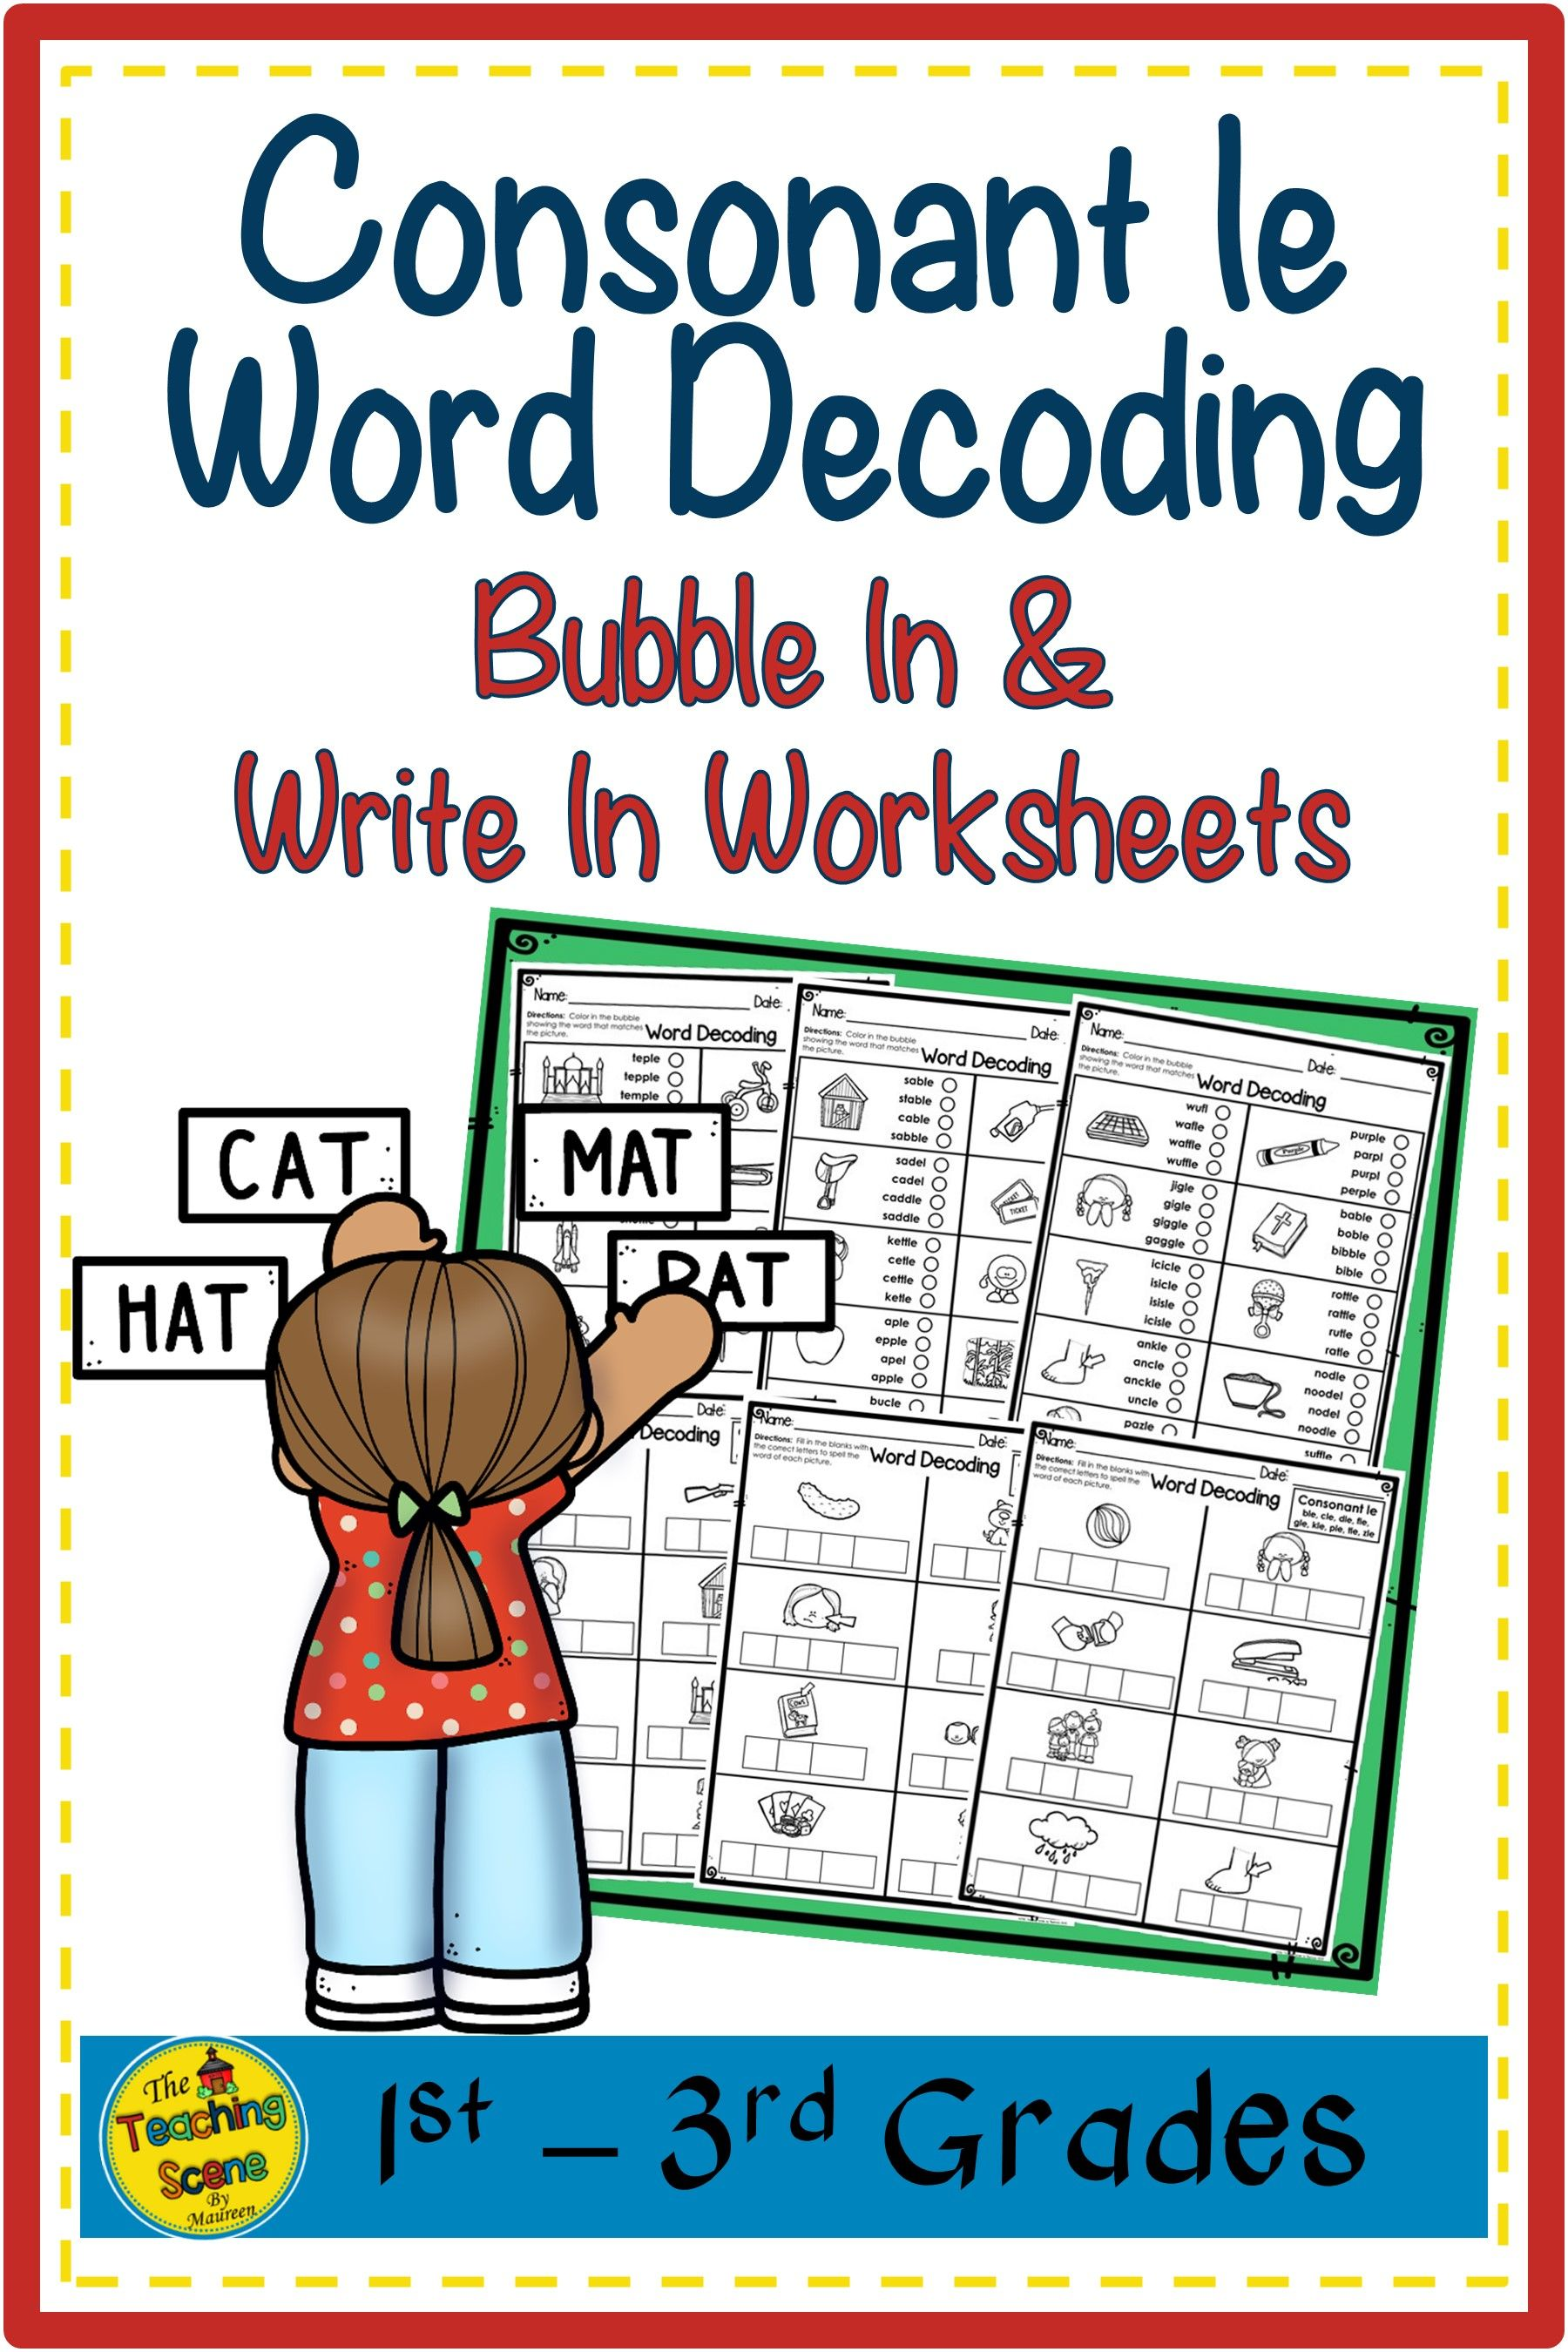 medium resolution of Consonant Le Worksheet   Printable Worksheets and Activities for Teachers